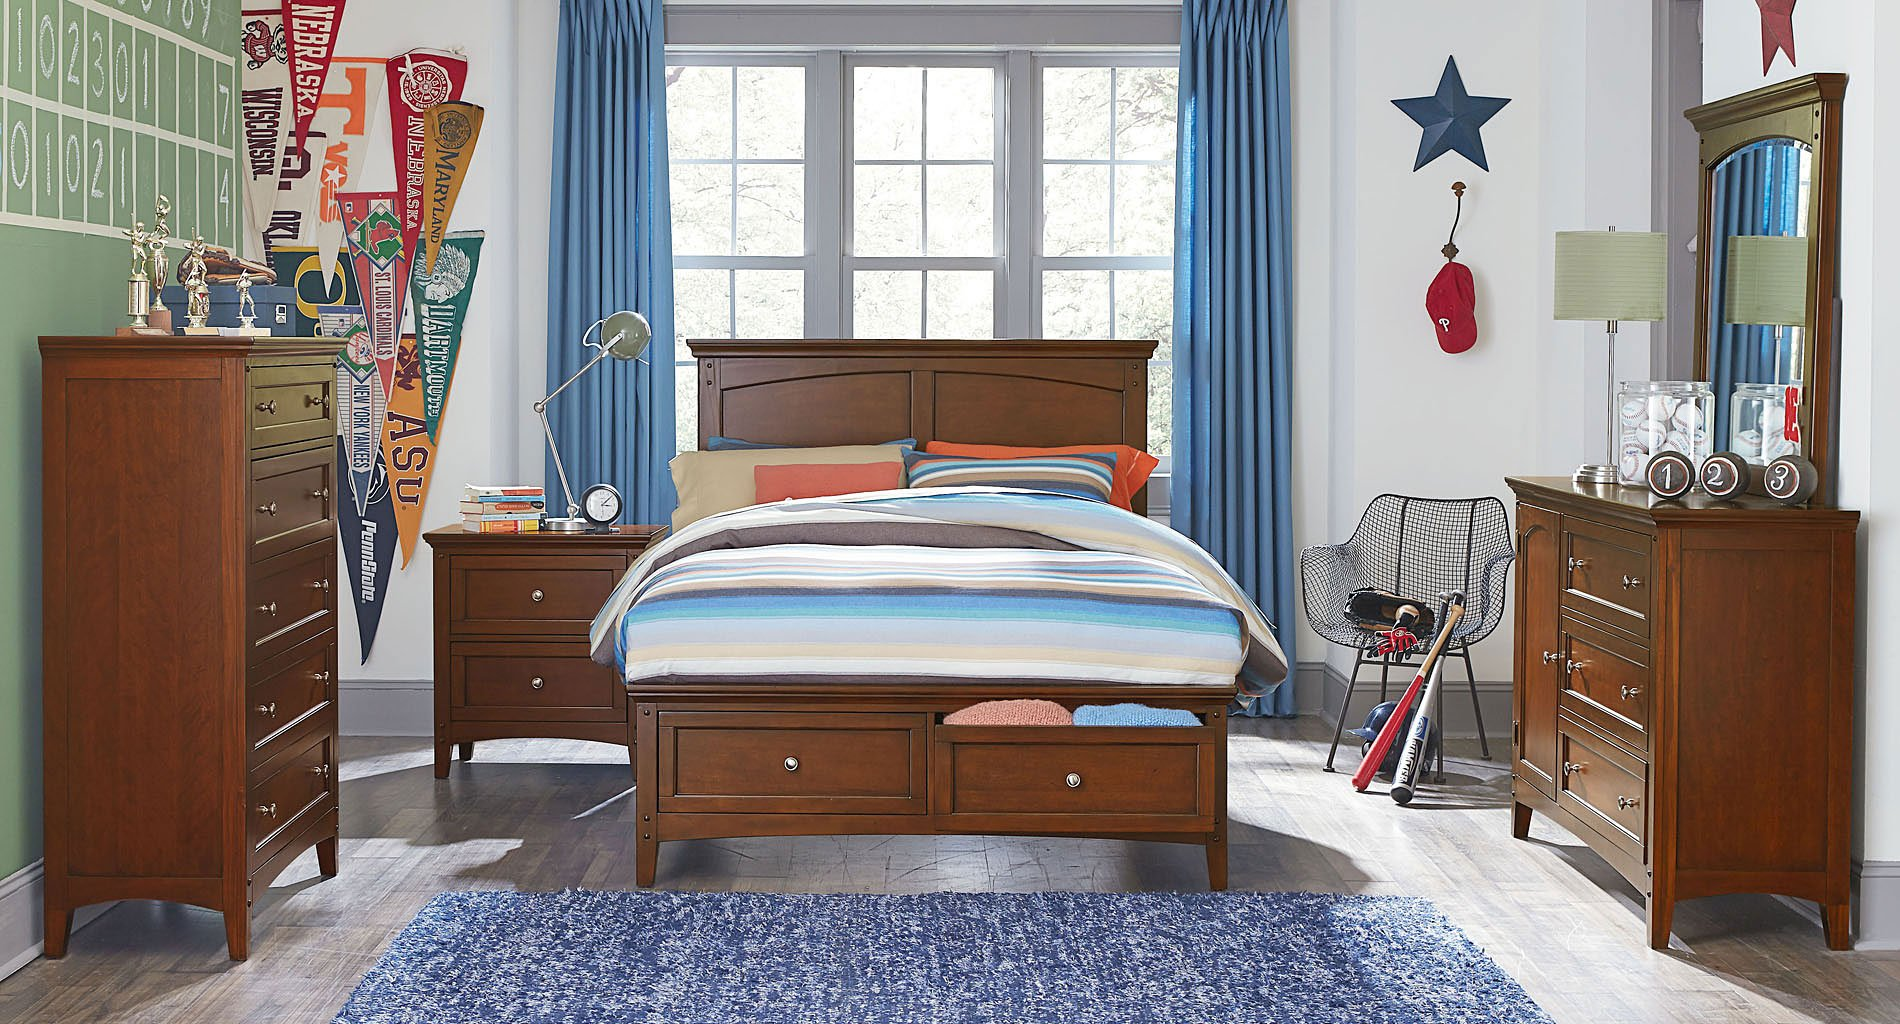 Stupendous Cooperstown Youth Storage Bedroom Set By Standard Furniture Home Interior And Landscaping Ferensignezvosmurscom